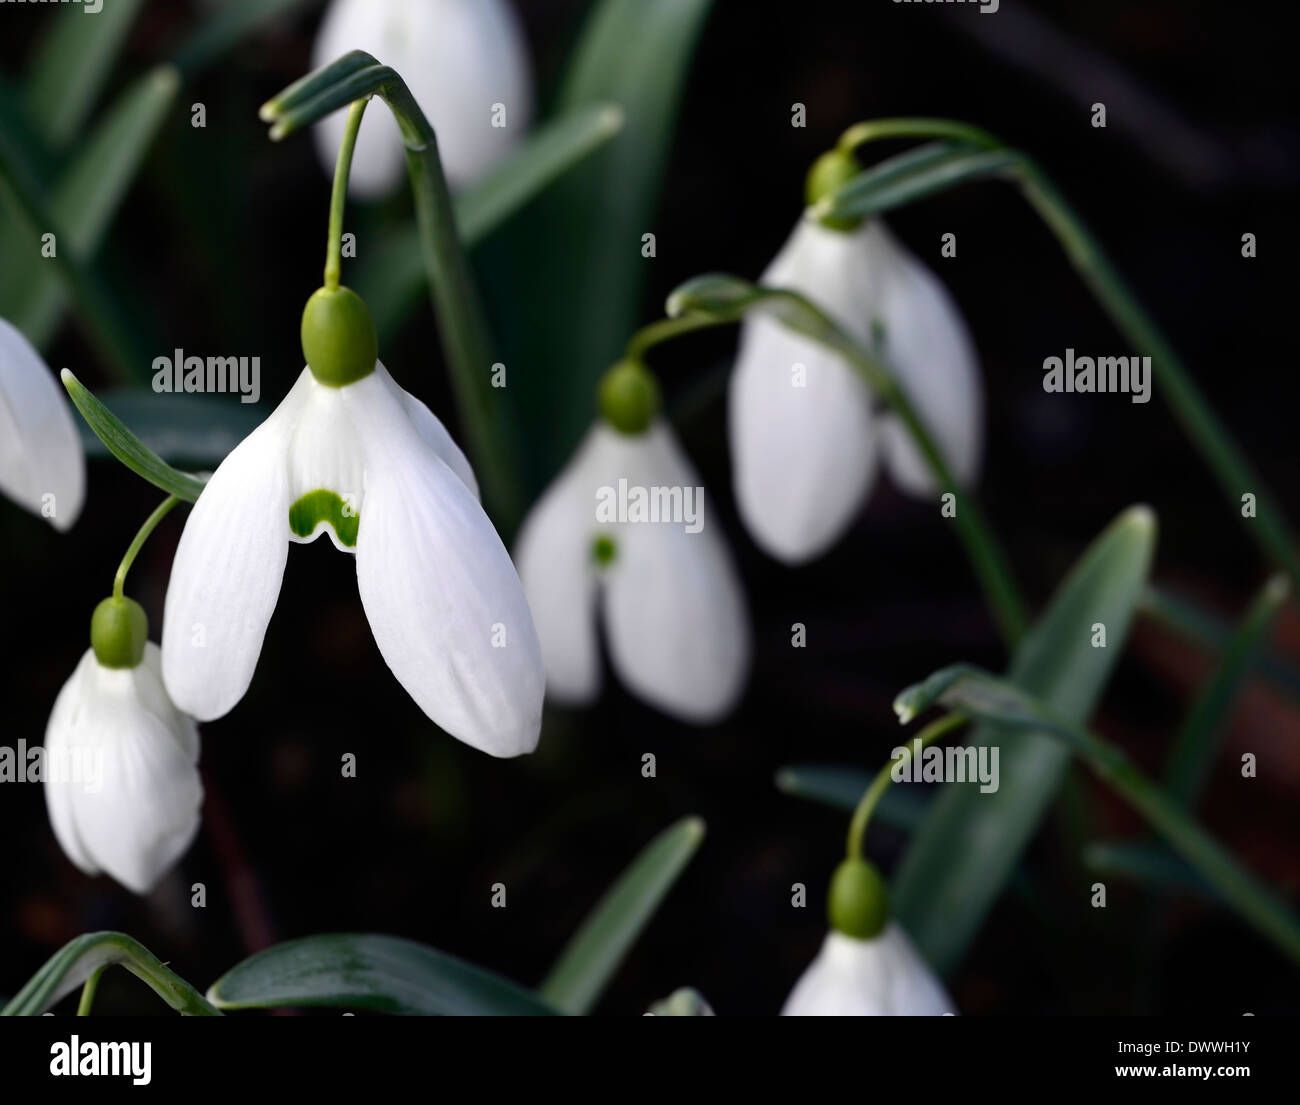 Galanthus bill bishop white flowers green markings flower bulbs galanthus bill bishop white flowers green markings flower bulbs snowdrops spring flowering mightylinksfo